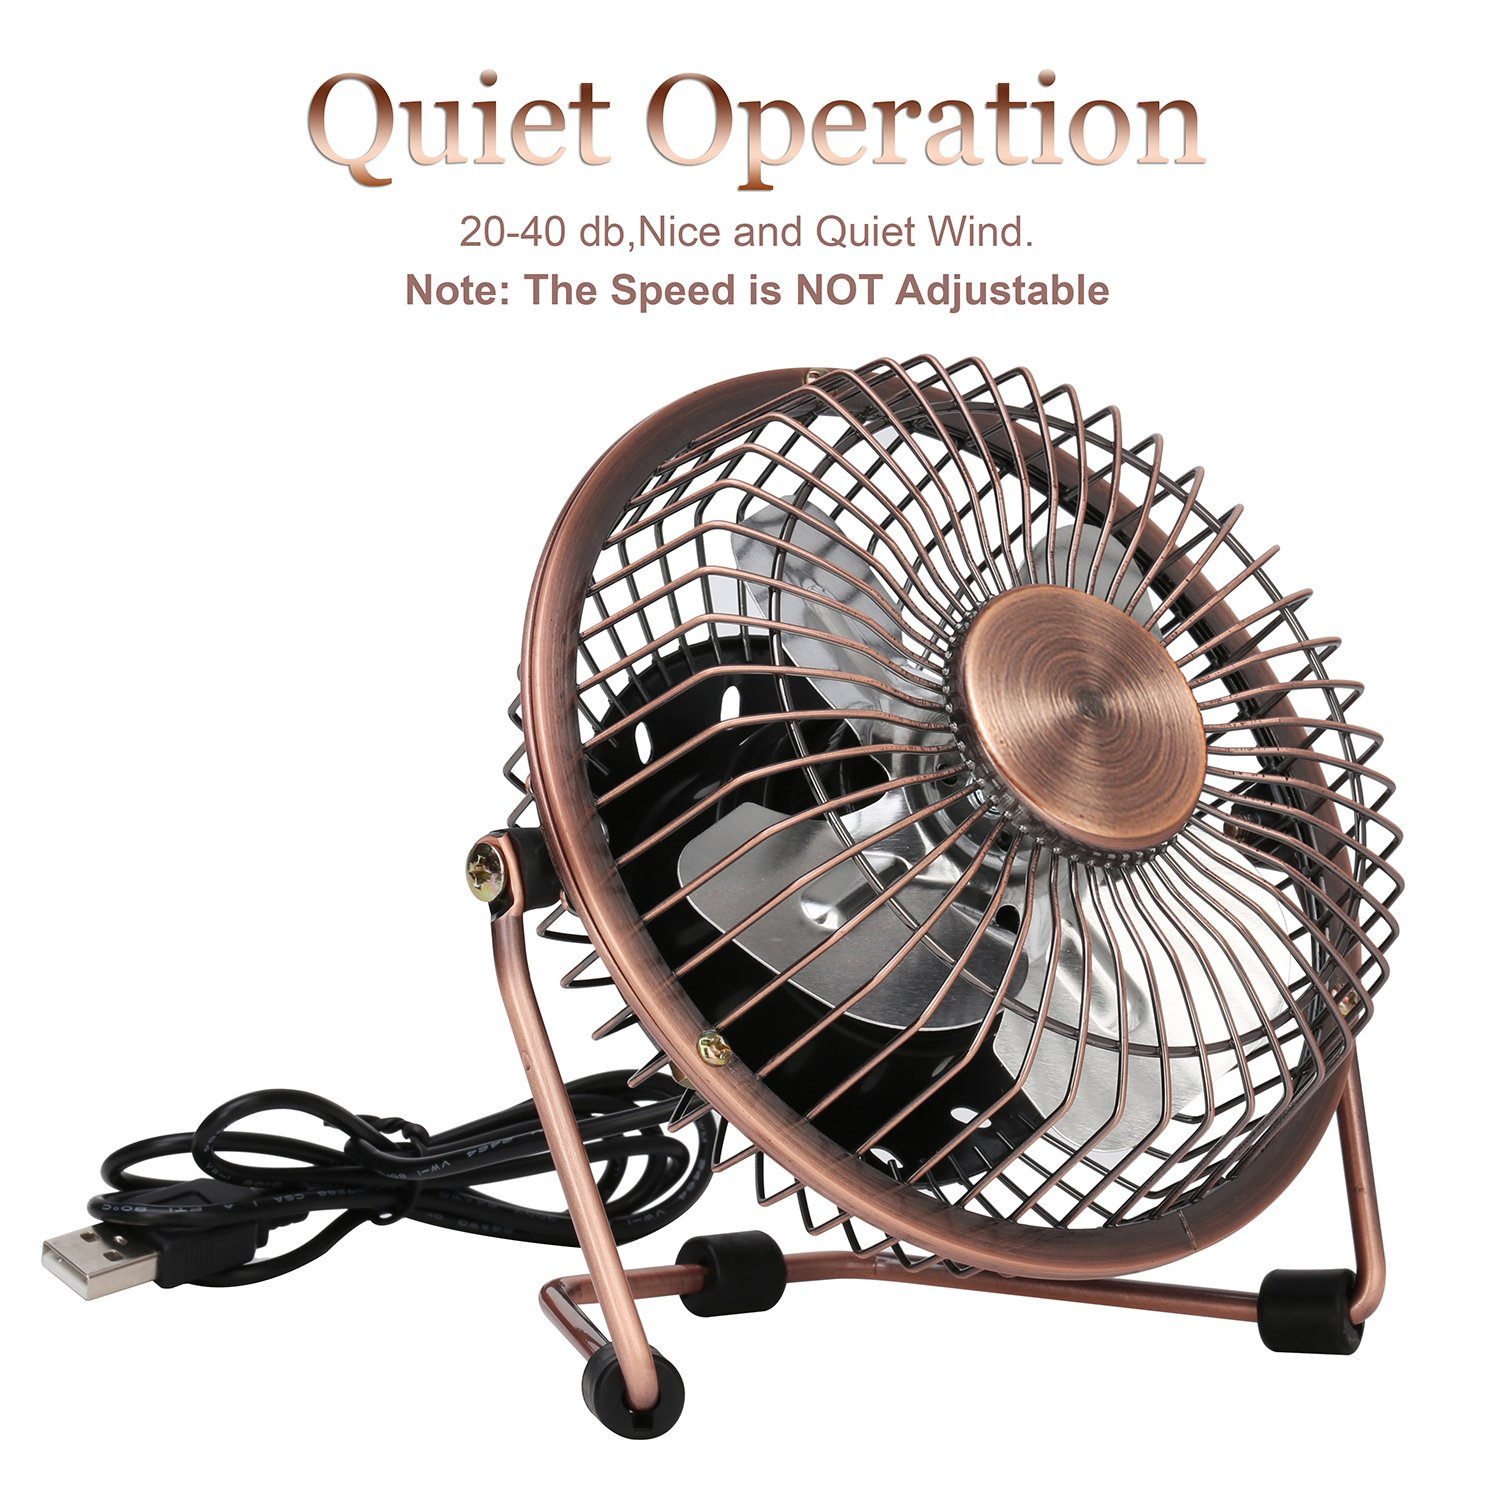 GLAMOURIC Small USB Desk Fan Mini Metal Personal Fan Retro Design Electric Portable Air Circulator Angle Adjustable Quiet Operation for Table Desktop Home Office Travel (Copper) by GLAMOURIC (Image #4)